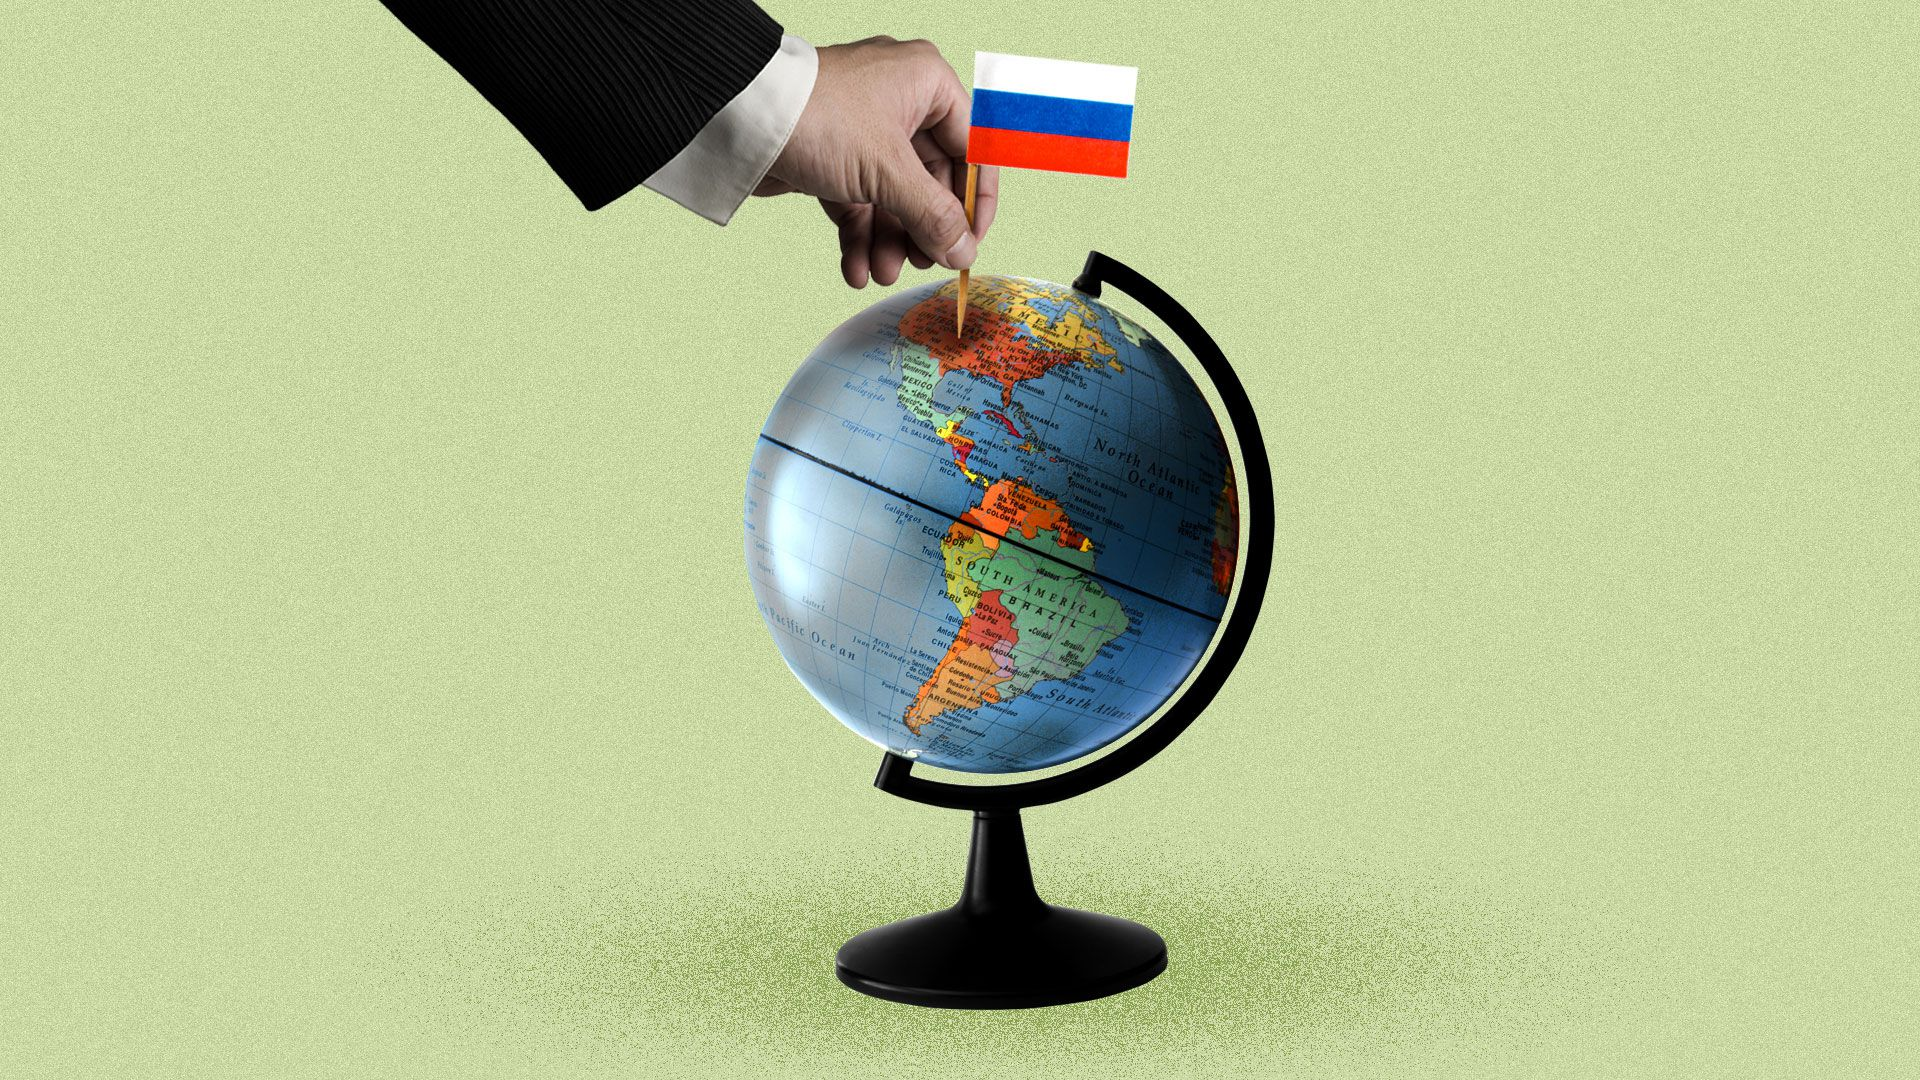 A hand planting a Russian flag on a globe